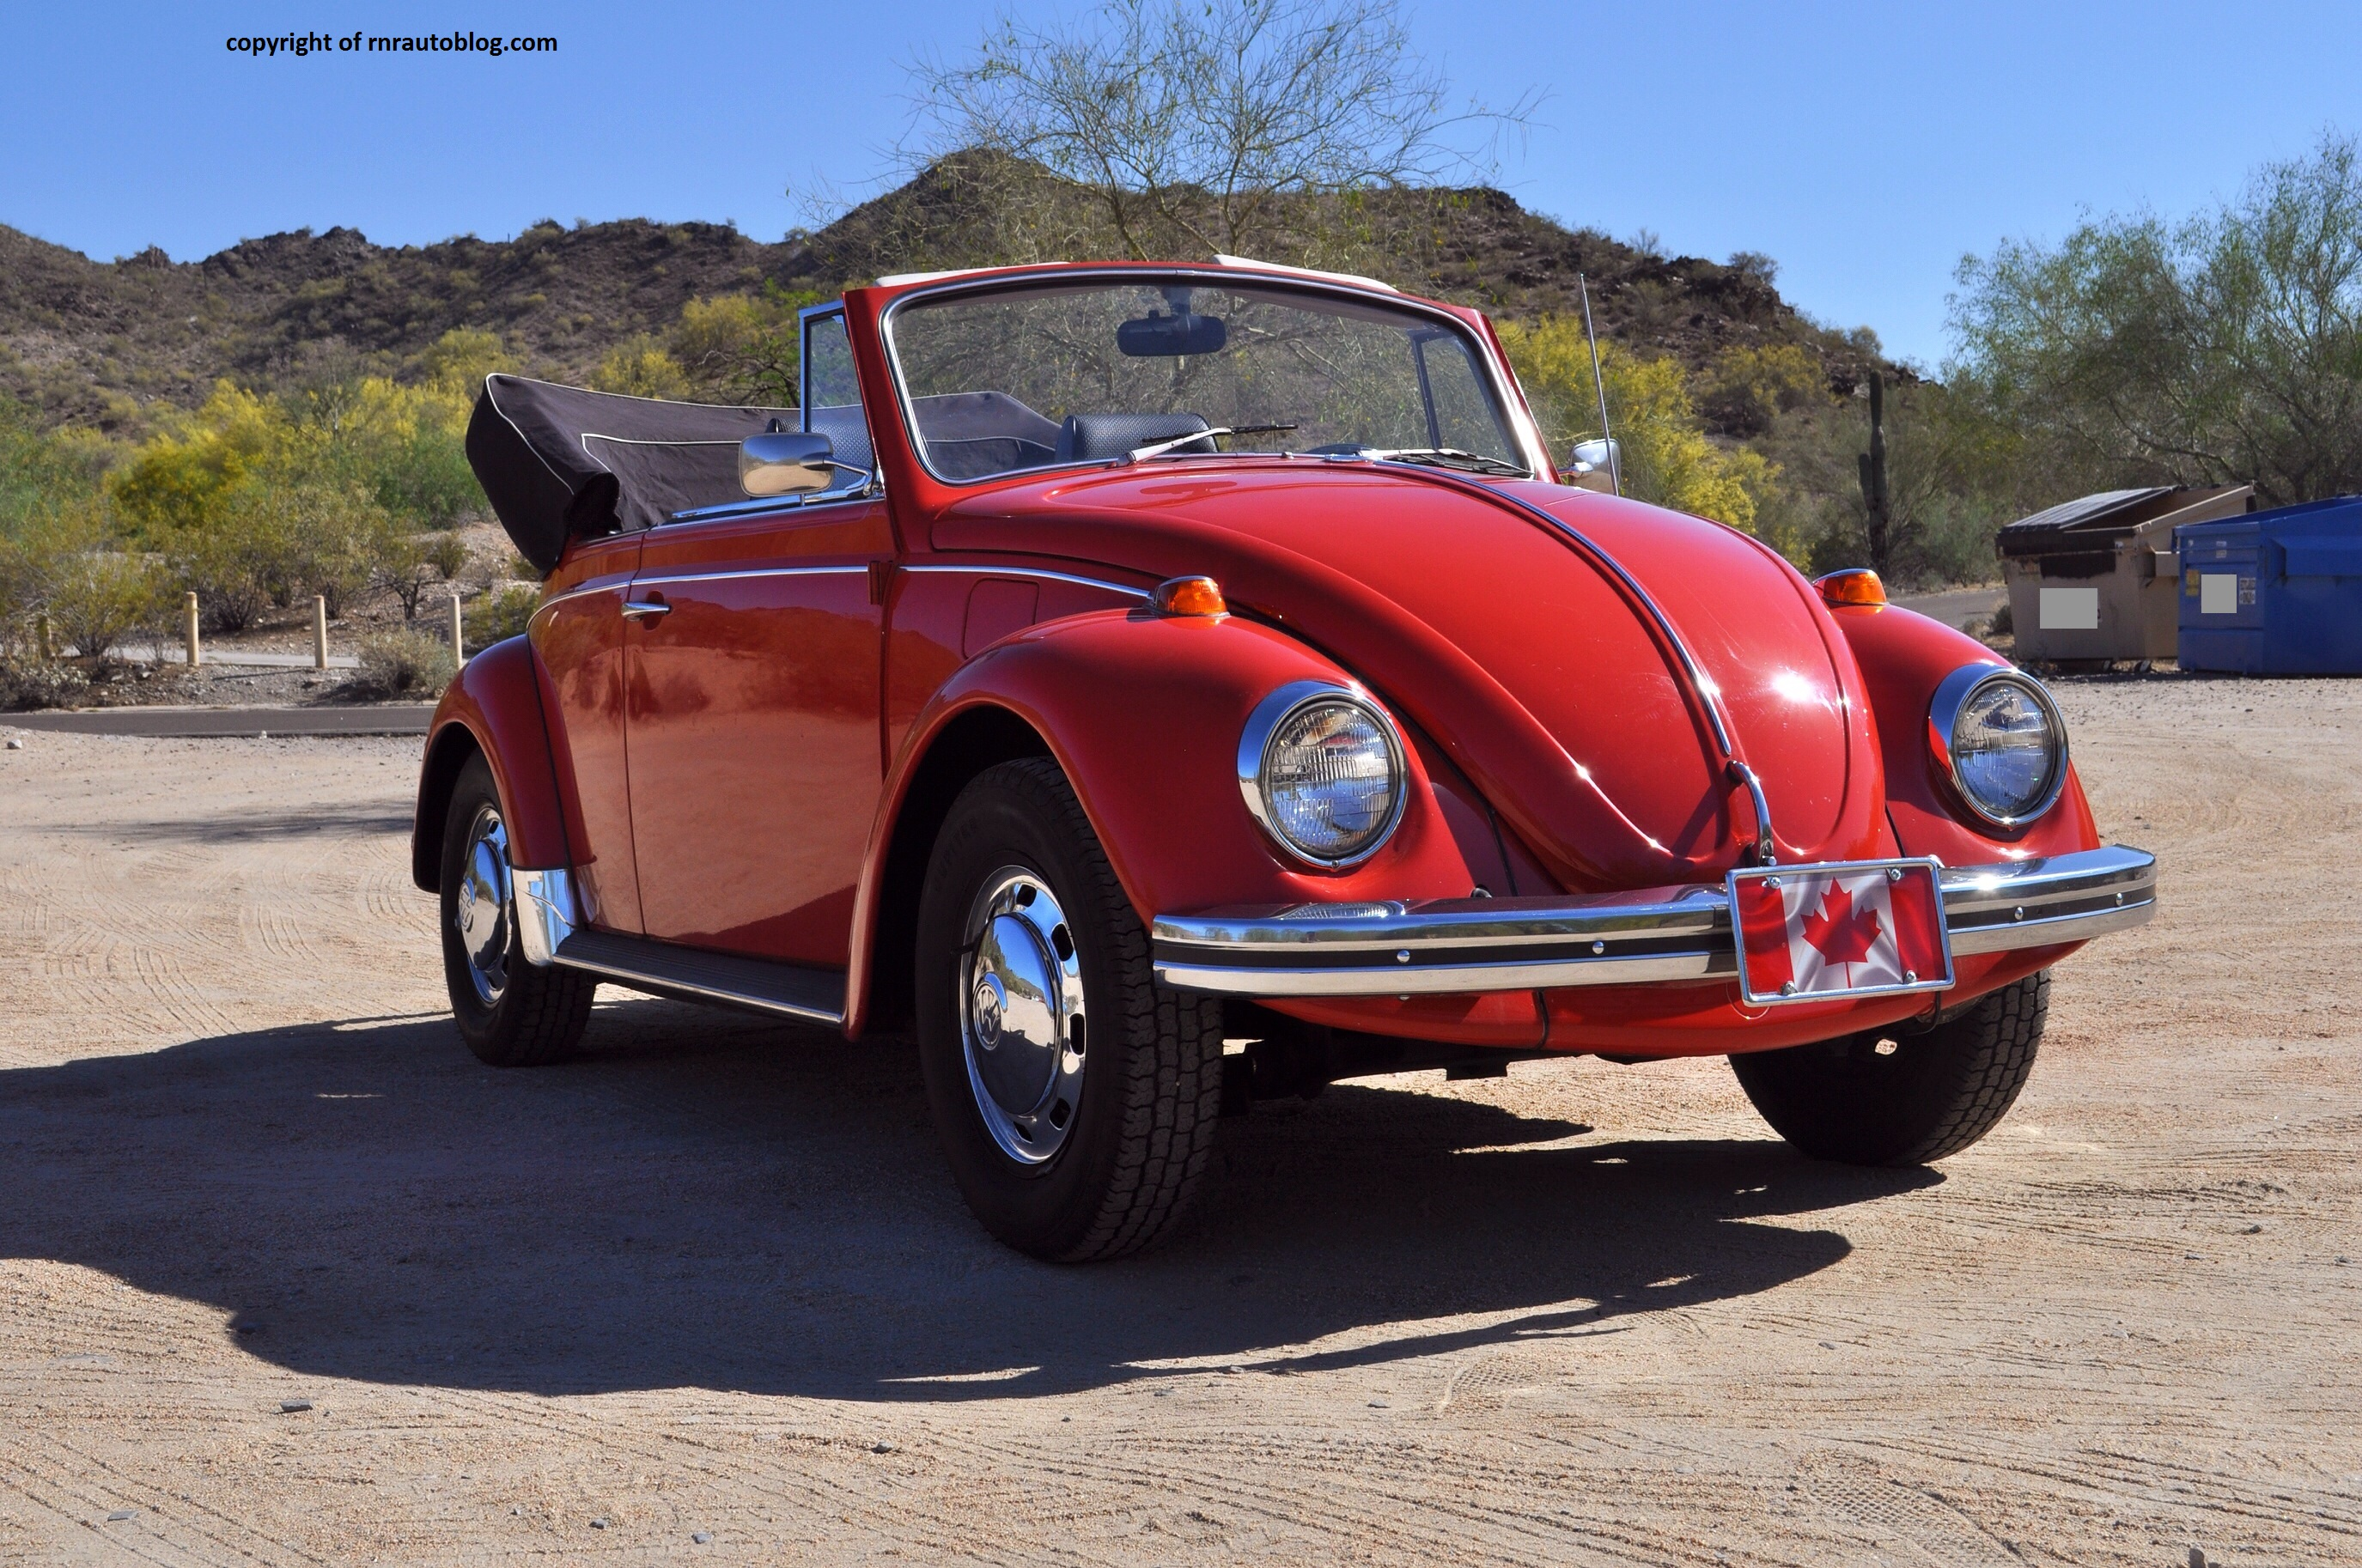 Vw Beetle Test >> 1969 Volkswagen Beetle Convertible Review | RNR Automotive Blog